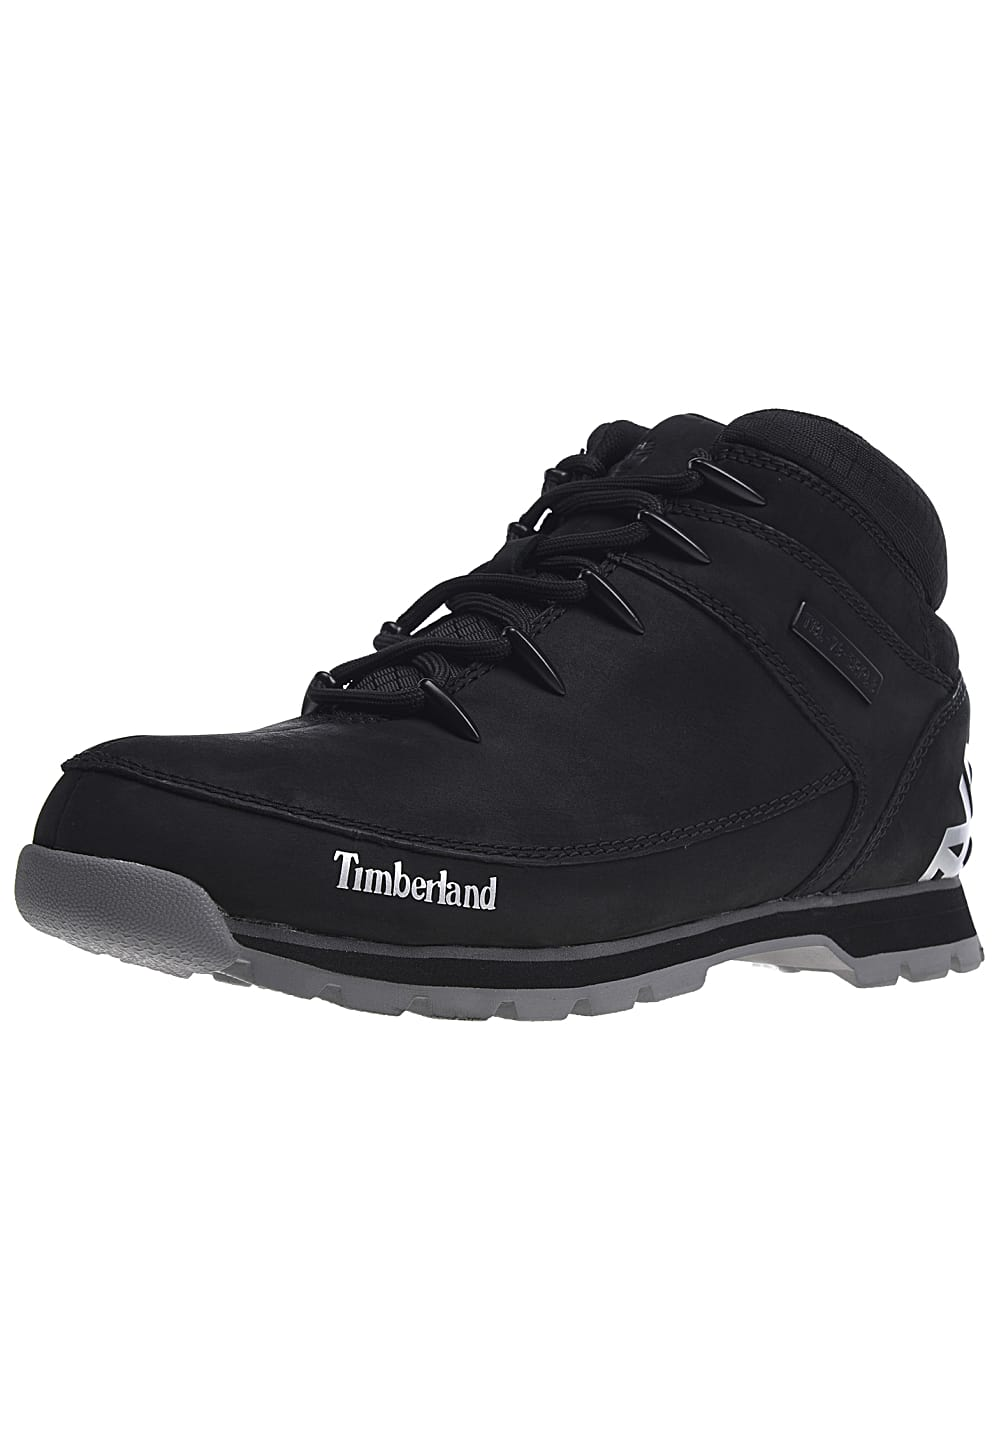 00e20f4db8b TIMBERLAND Euro Sprint Hiker - Boots for Men - Black